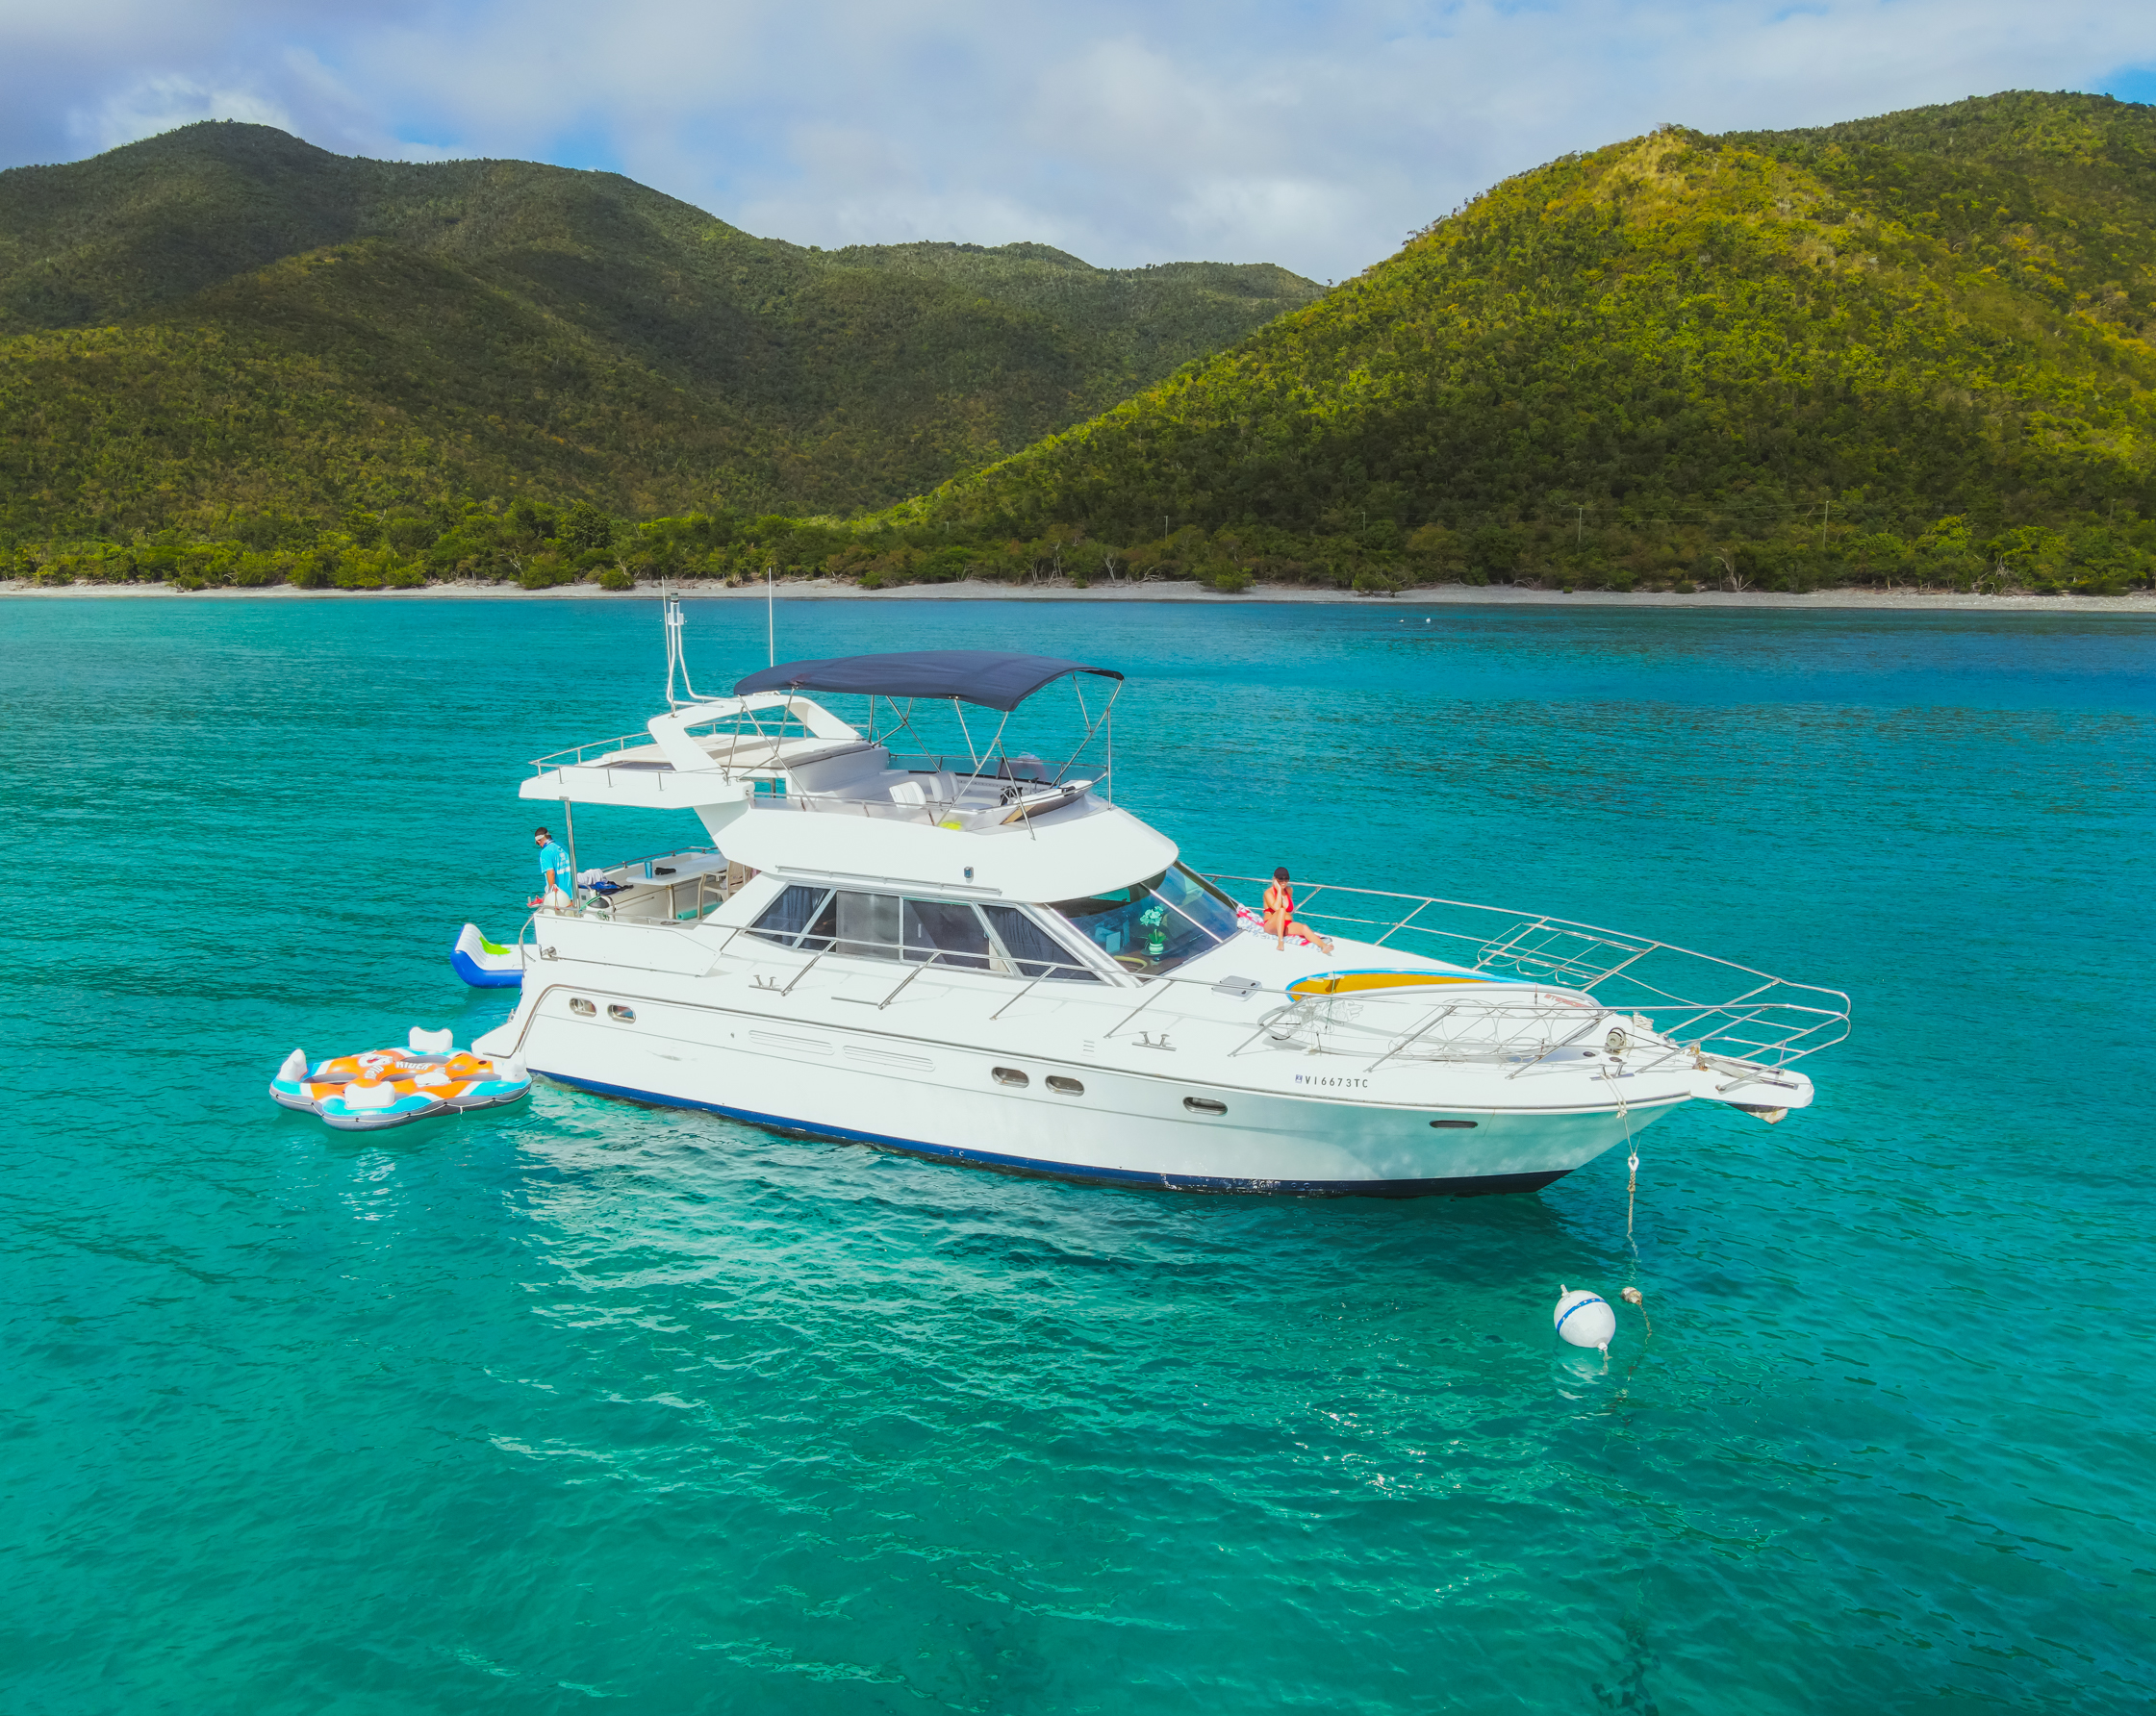 Full Day Charter (starts at 6 hrs)